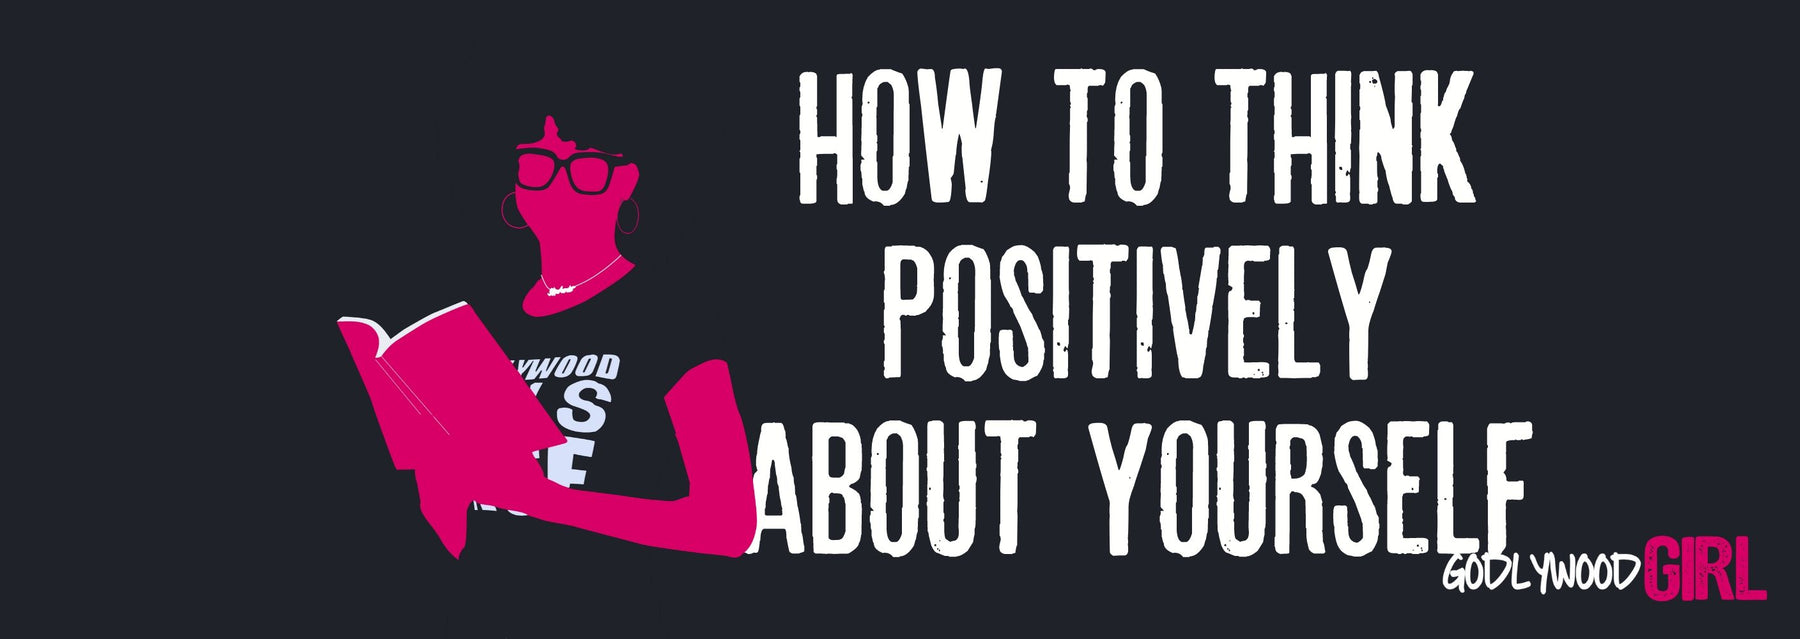 HOW TO THINK POSITIVELY ABOUT YOURSELF (How To Reprogram Your Mind for Positive Thinking) || HOW TO